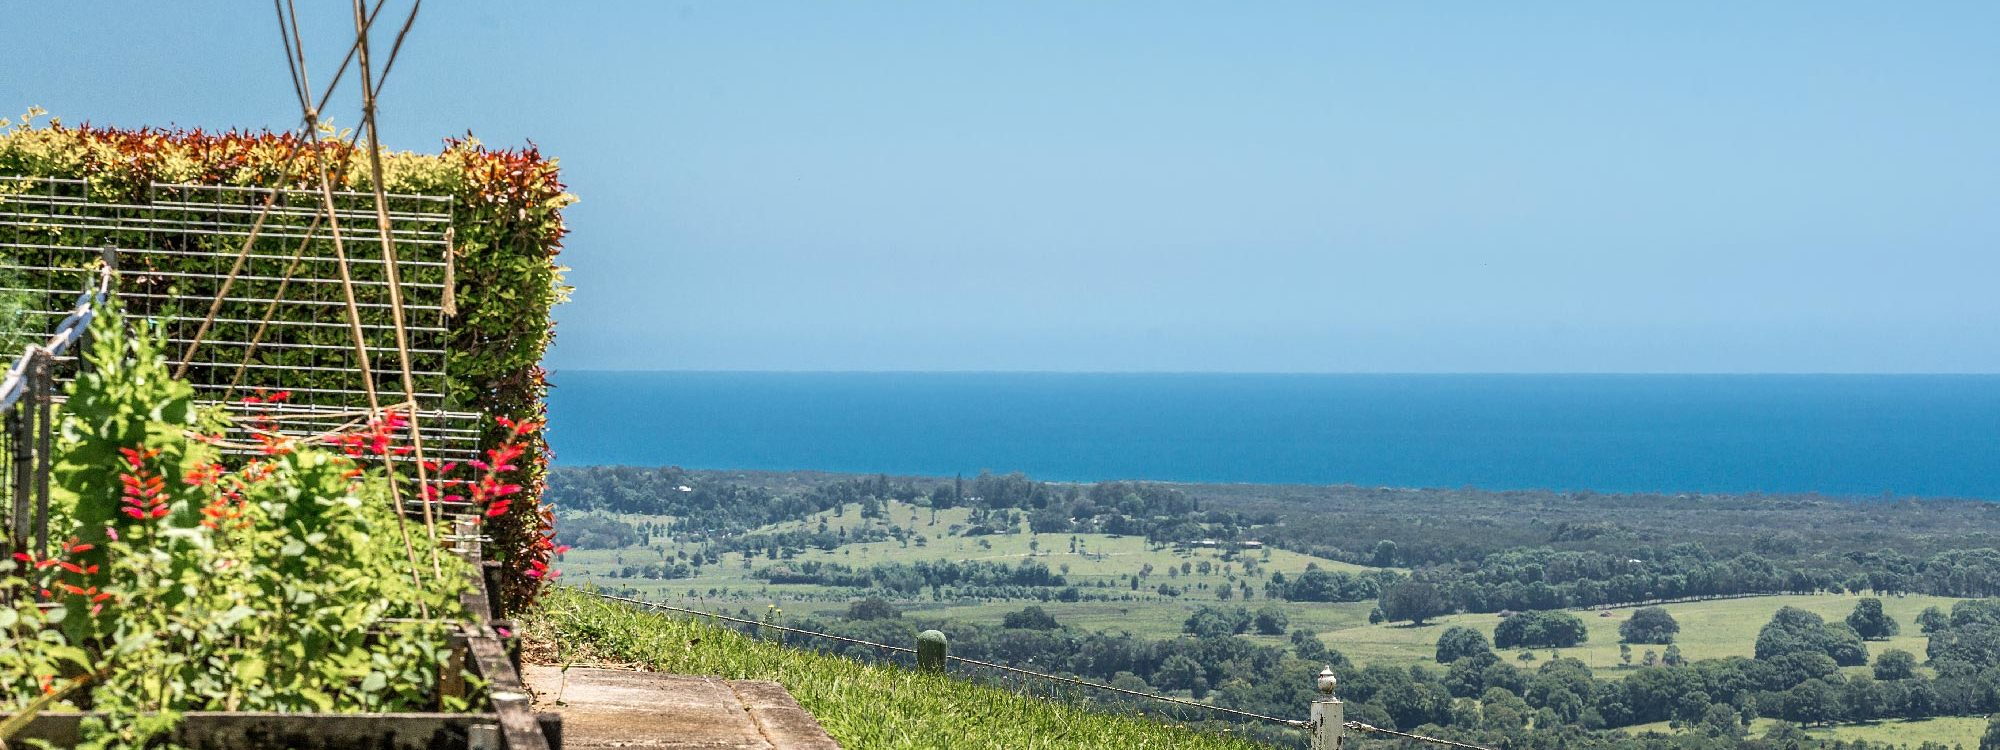 Pacific Ridge - Byron Bay - Veggie Garden with a View